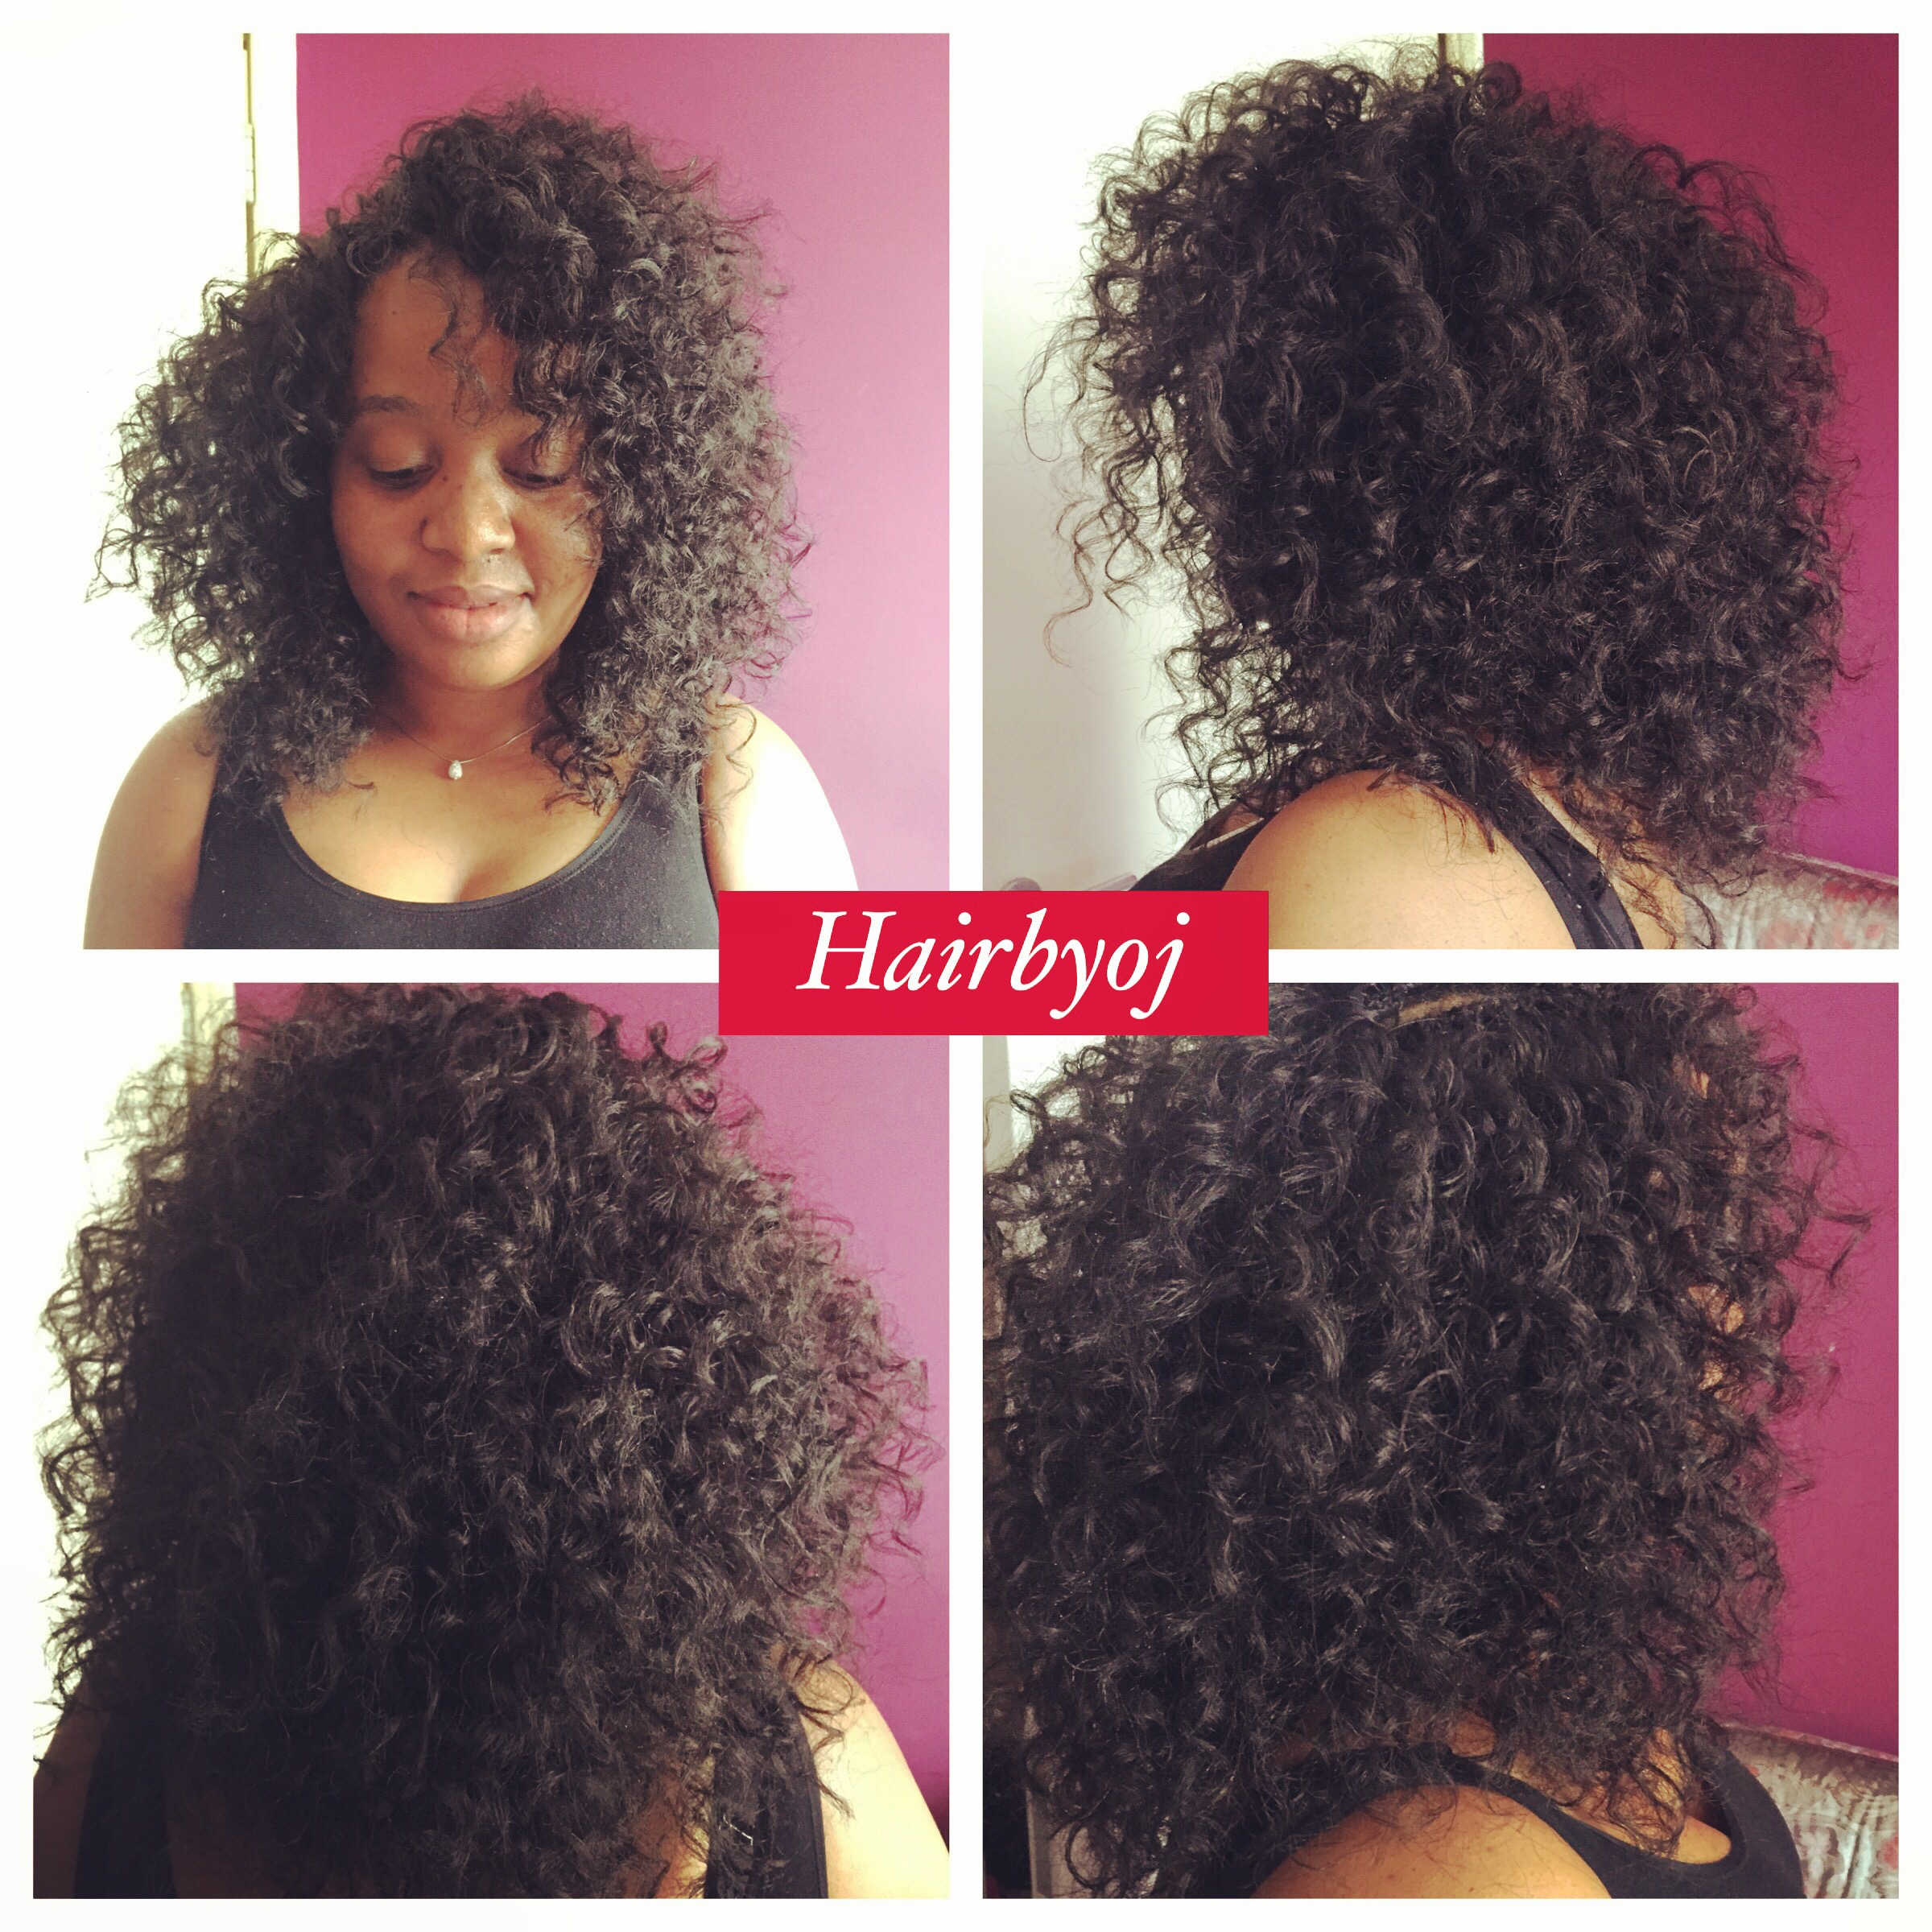 Shoulder Length Curly Crochet Braids With Layers Hairbyoj